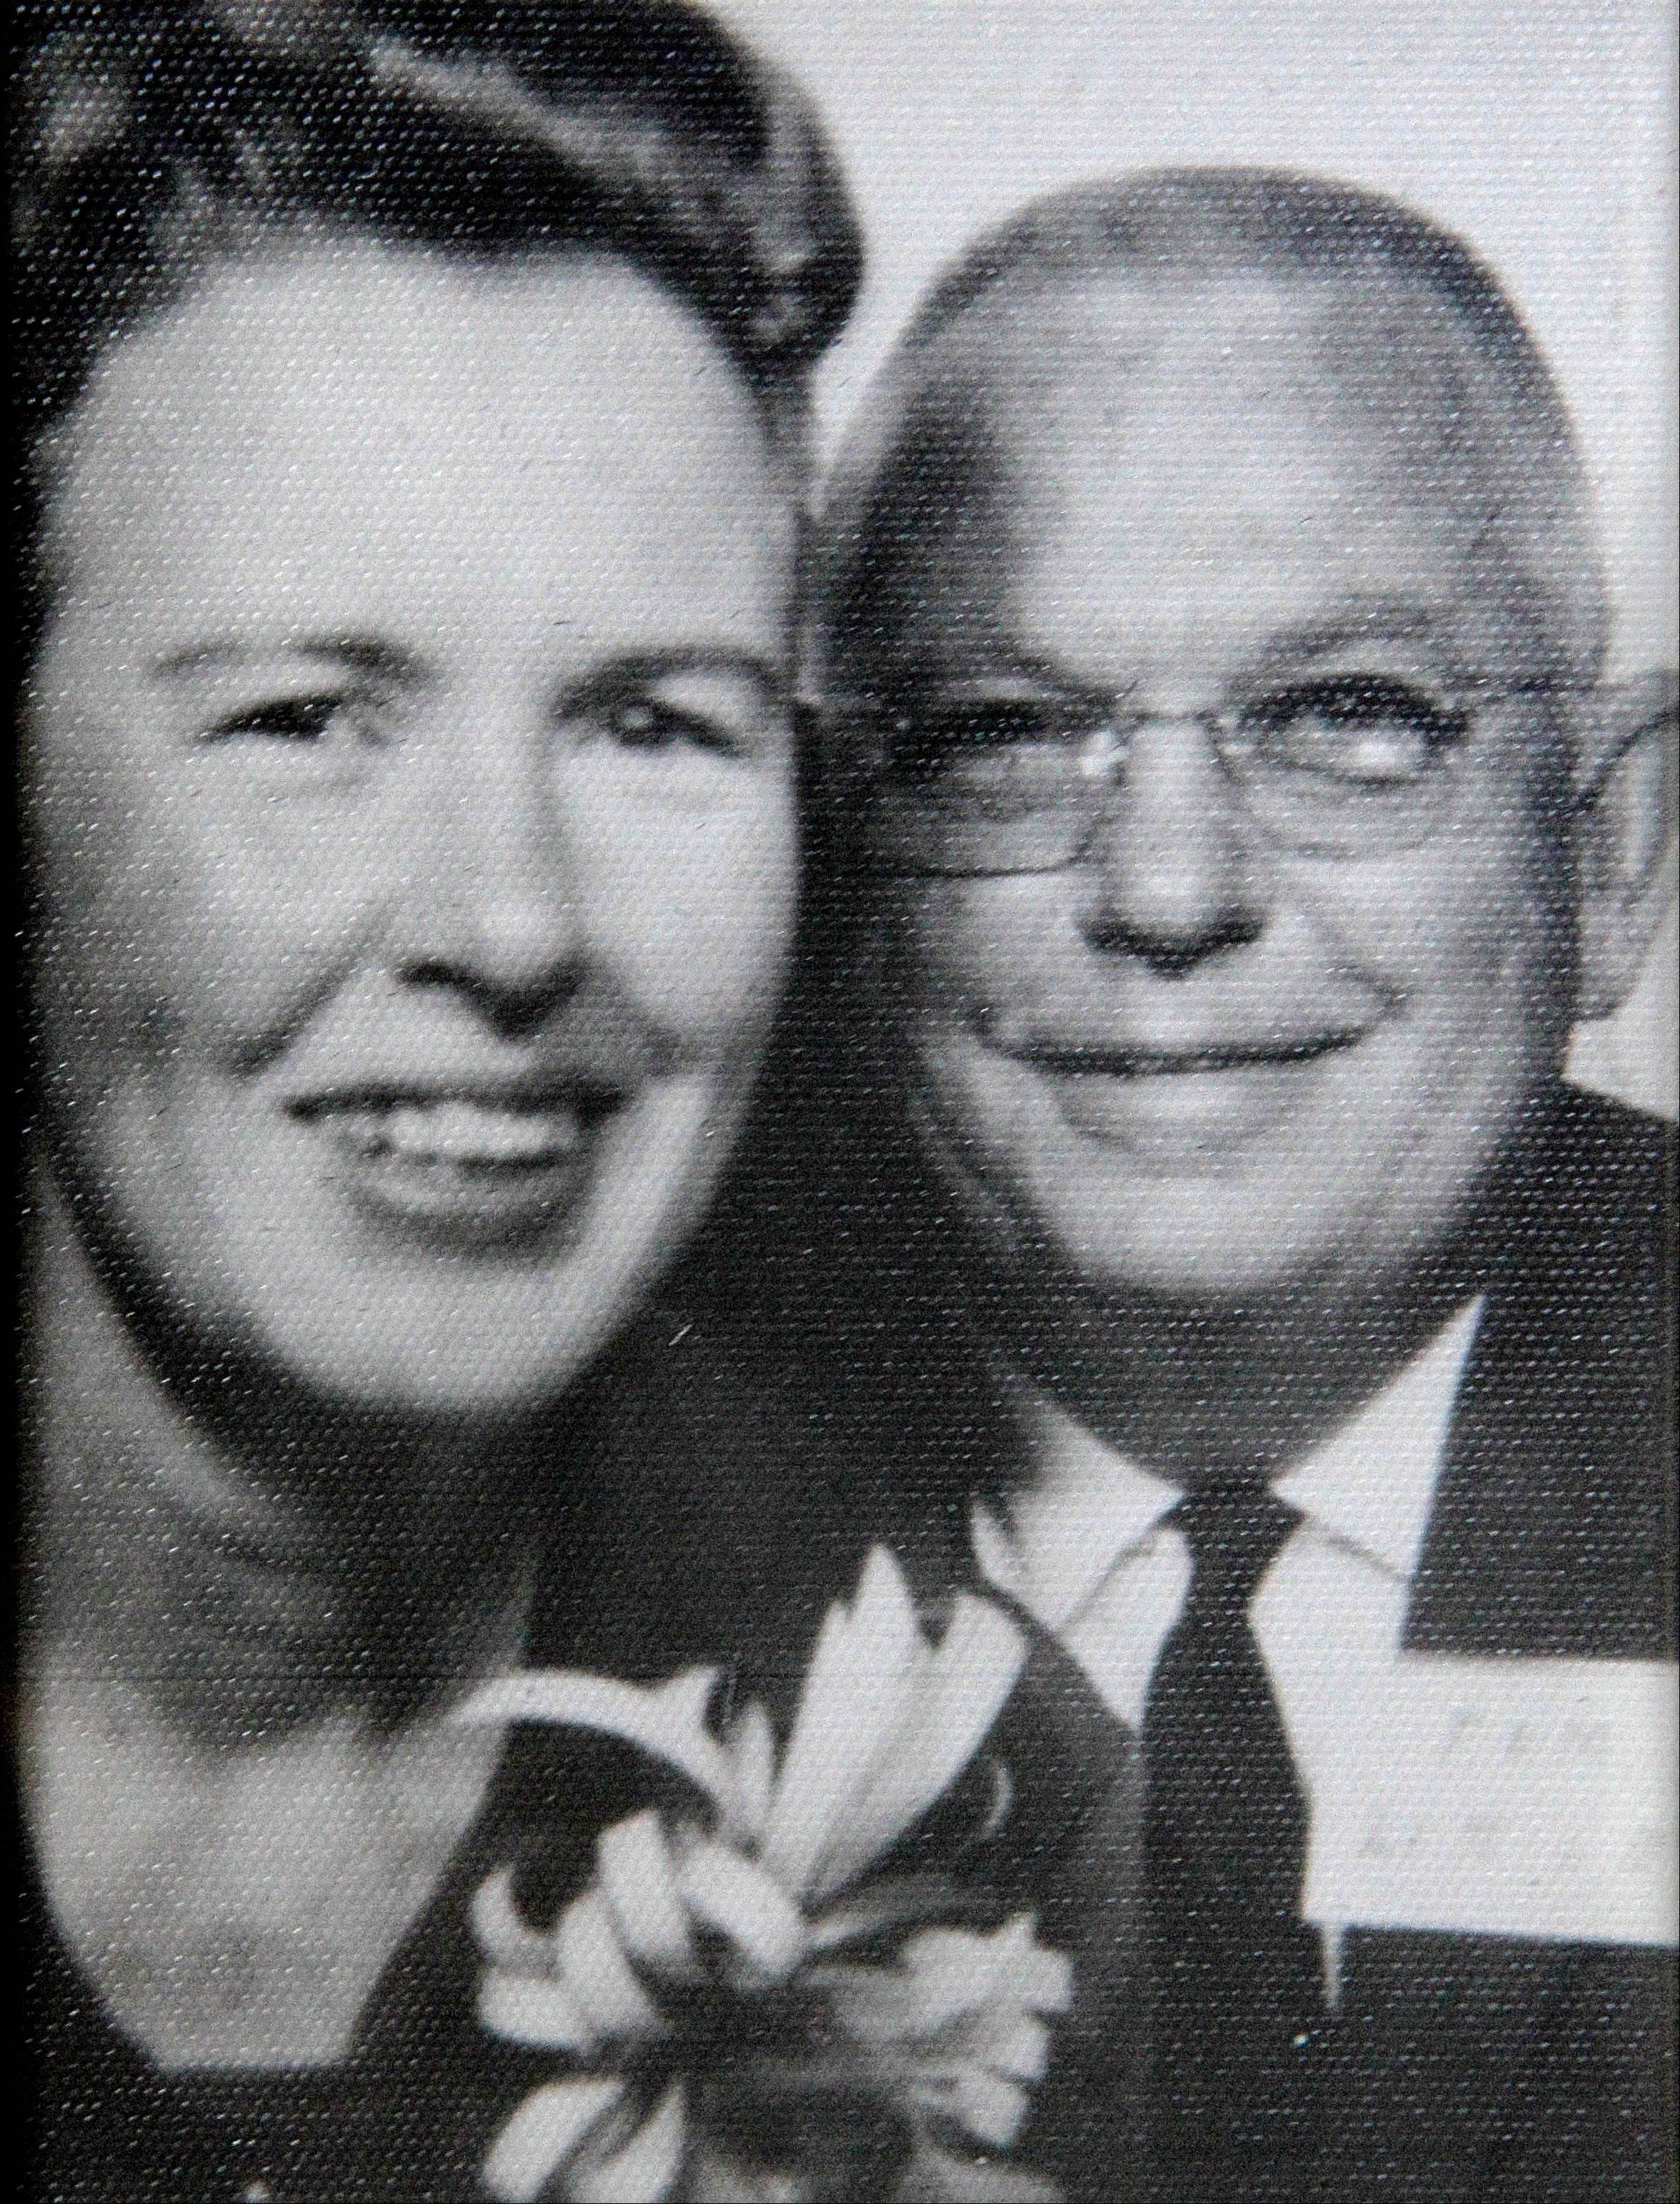 This 1962 photo provided by Tom Little Jr. shows his parents, Tom and Charlotte Little, taken in a photo booth at the Atlanta airport before they boarded a flight to Paris. Little was 12 when his parents were killed aboard a returning chartered Air France plane carrying a group of Atlanta's cultural leaders that crashed on takeoff at Orly Field in Paris in 1962.